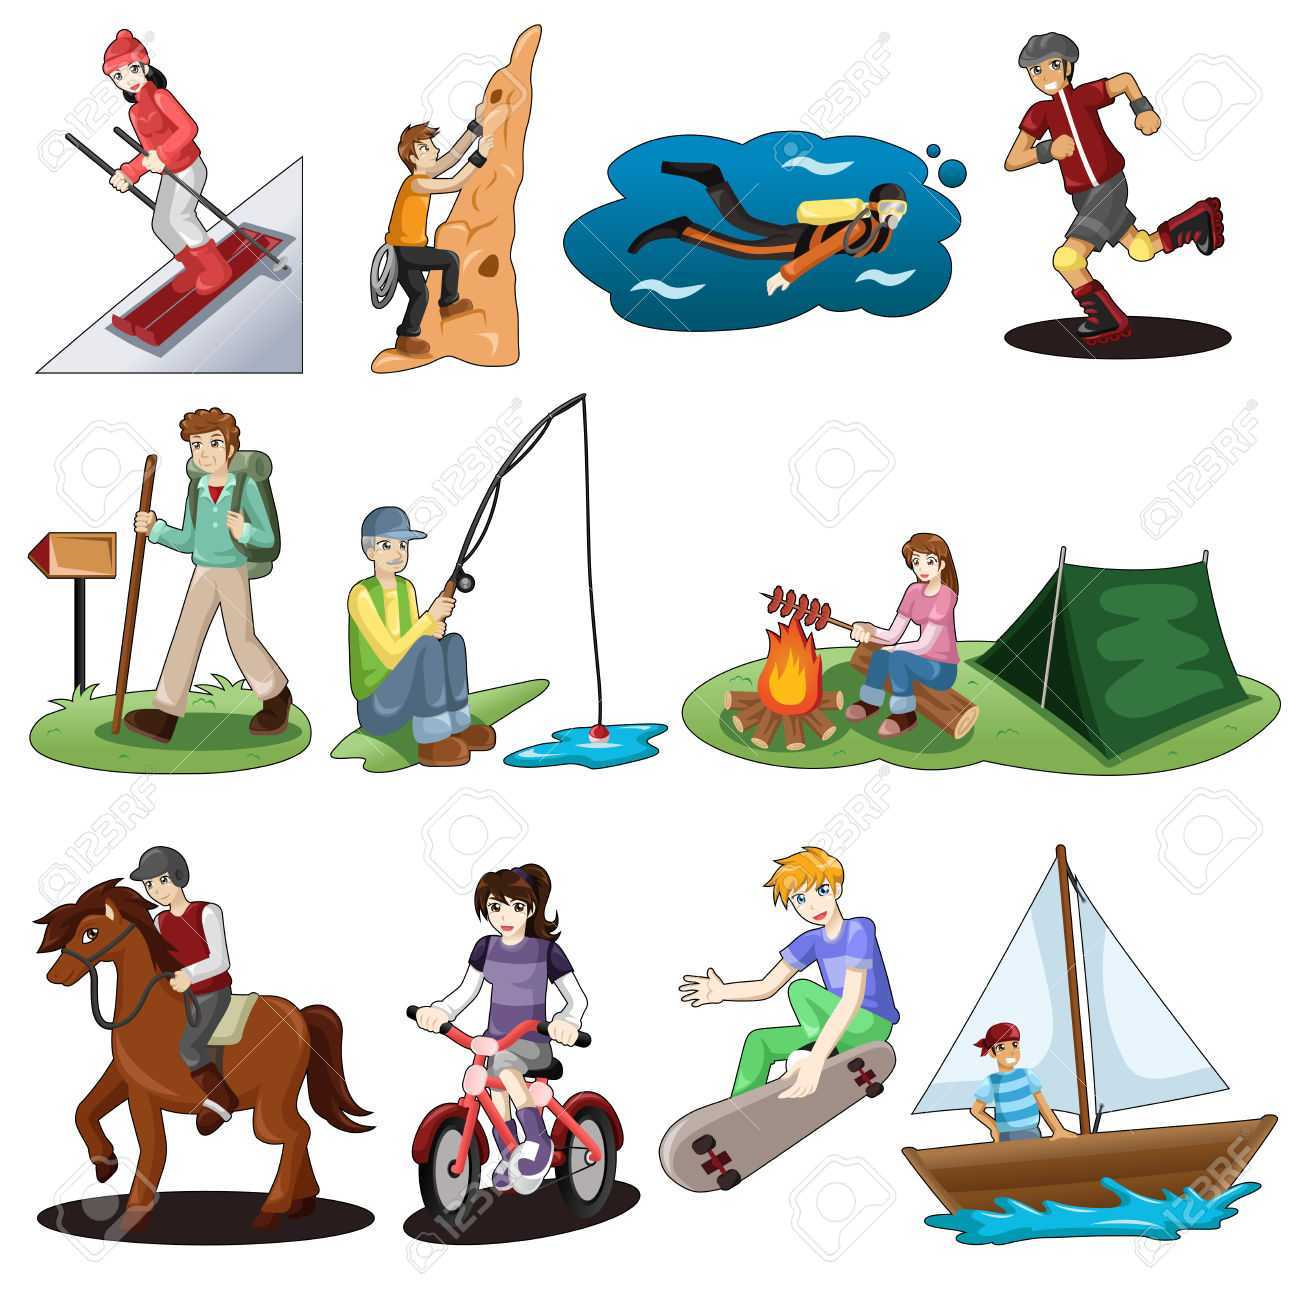 Activities clipart outdoor activity. Camping unique leisure pencil